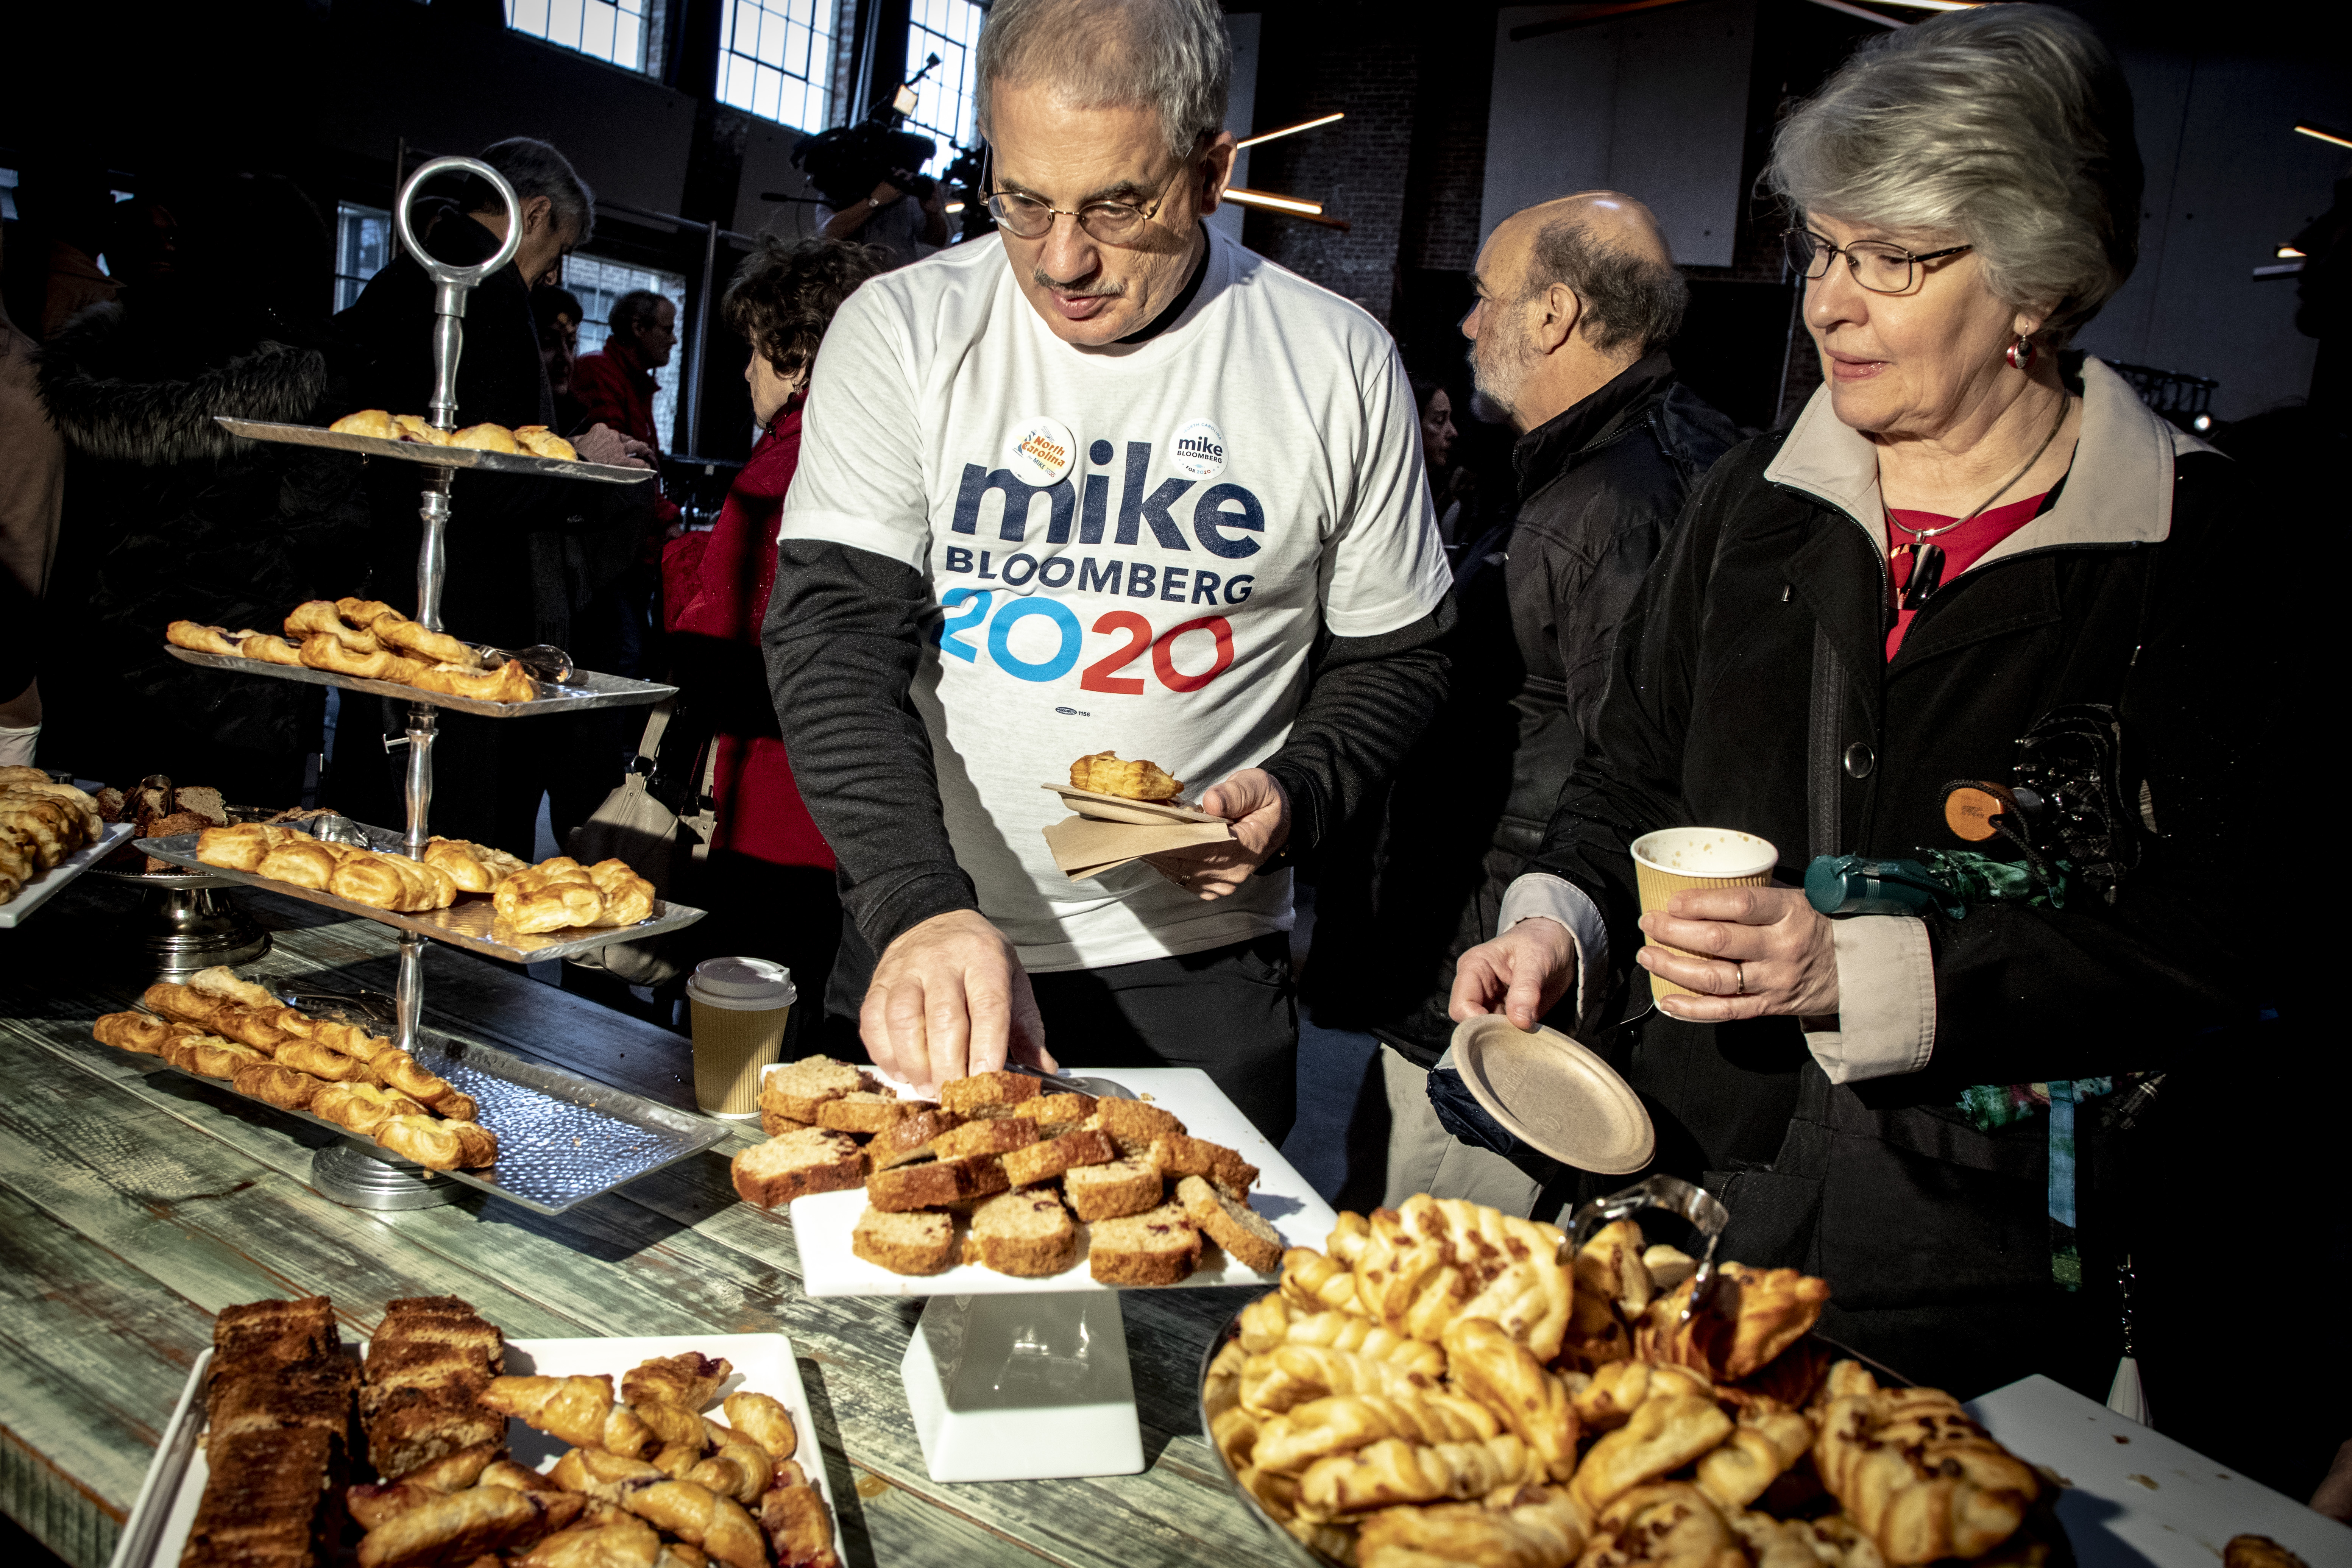 """Man and woman look like a table filled with pastries; the man wears a shirt that reads """"Mike Bloomberg 2020."""""""